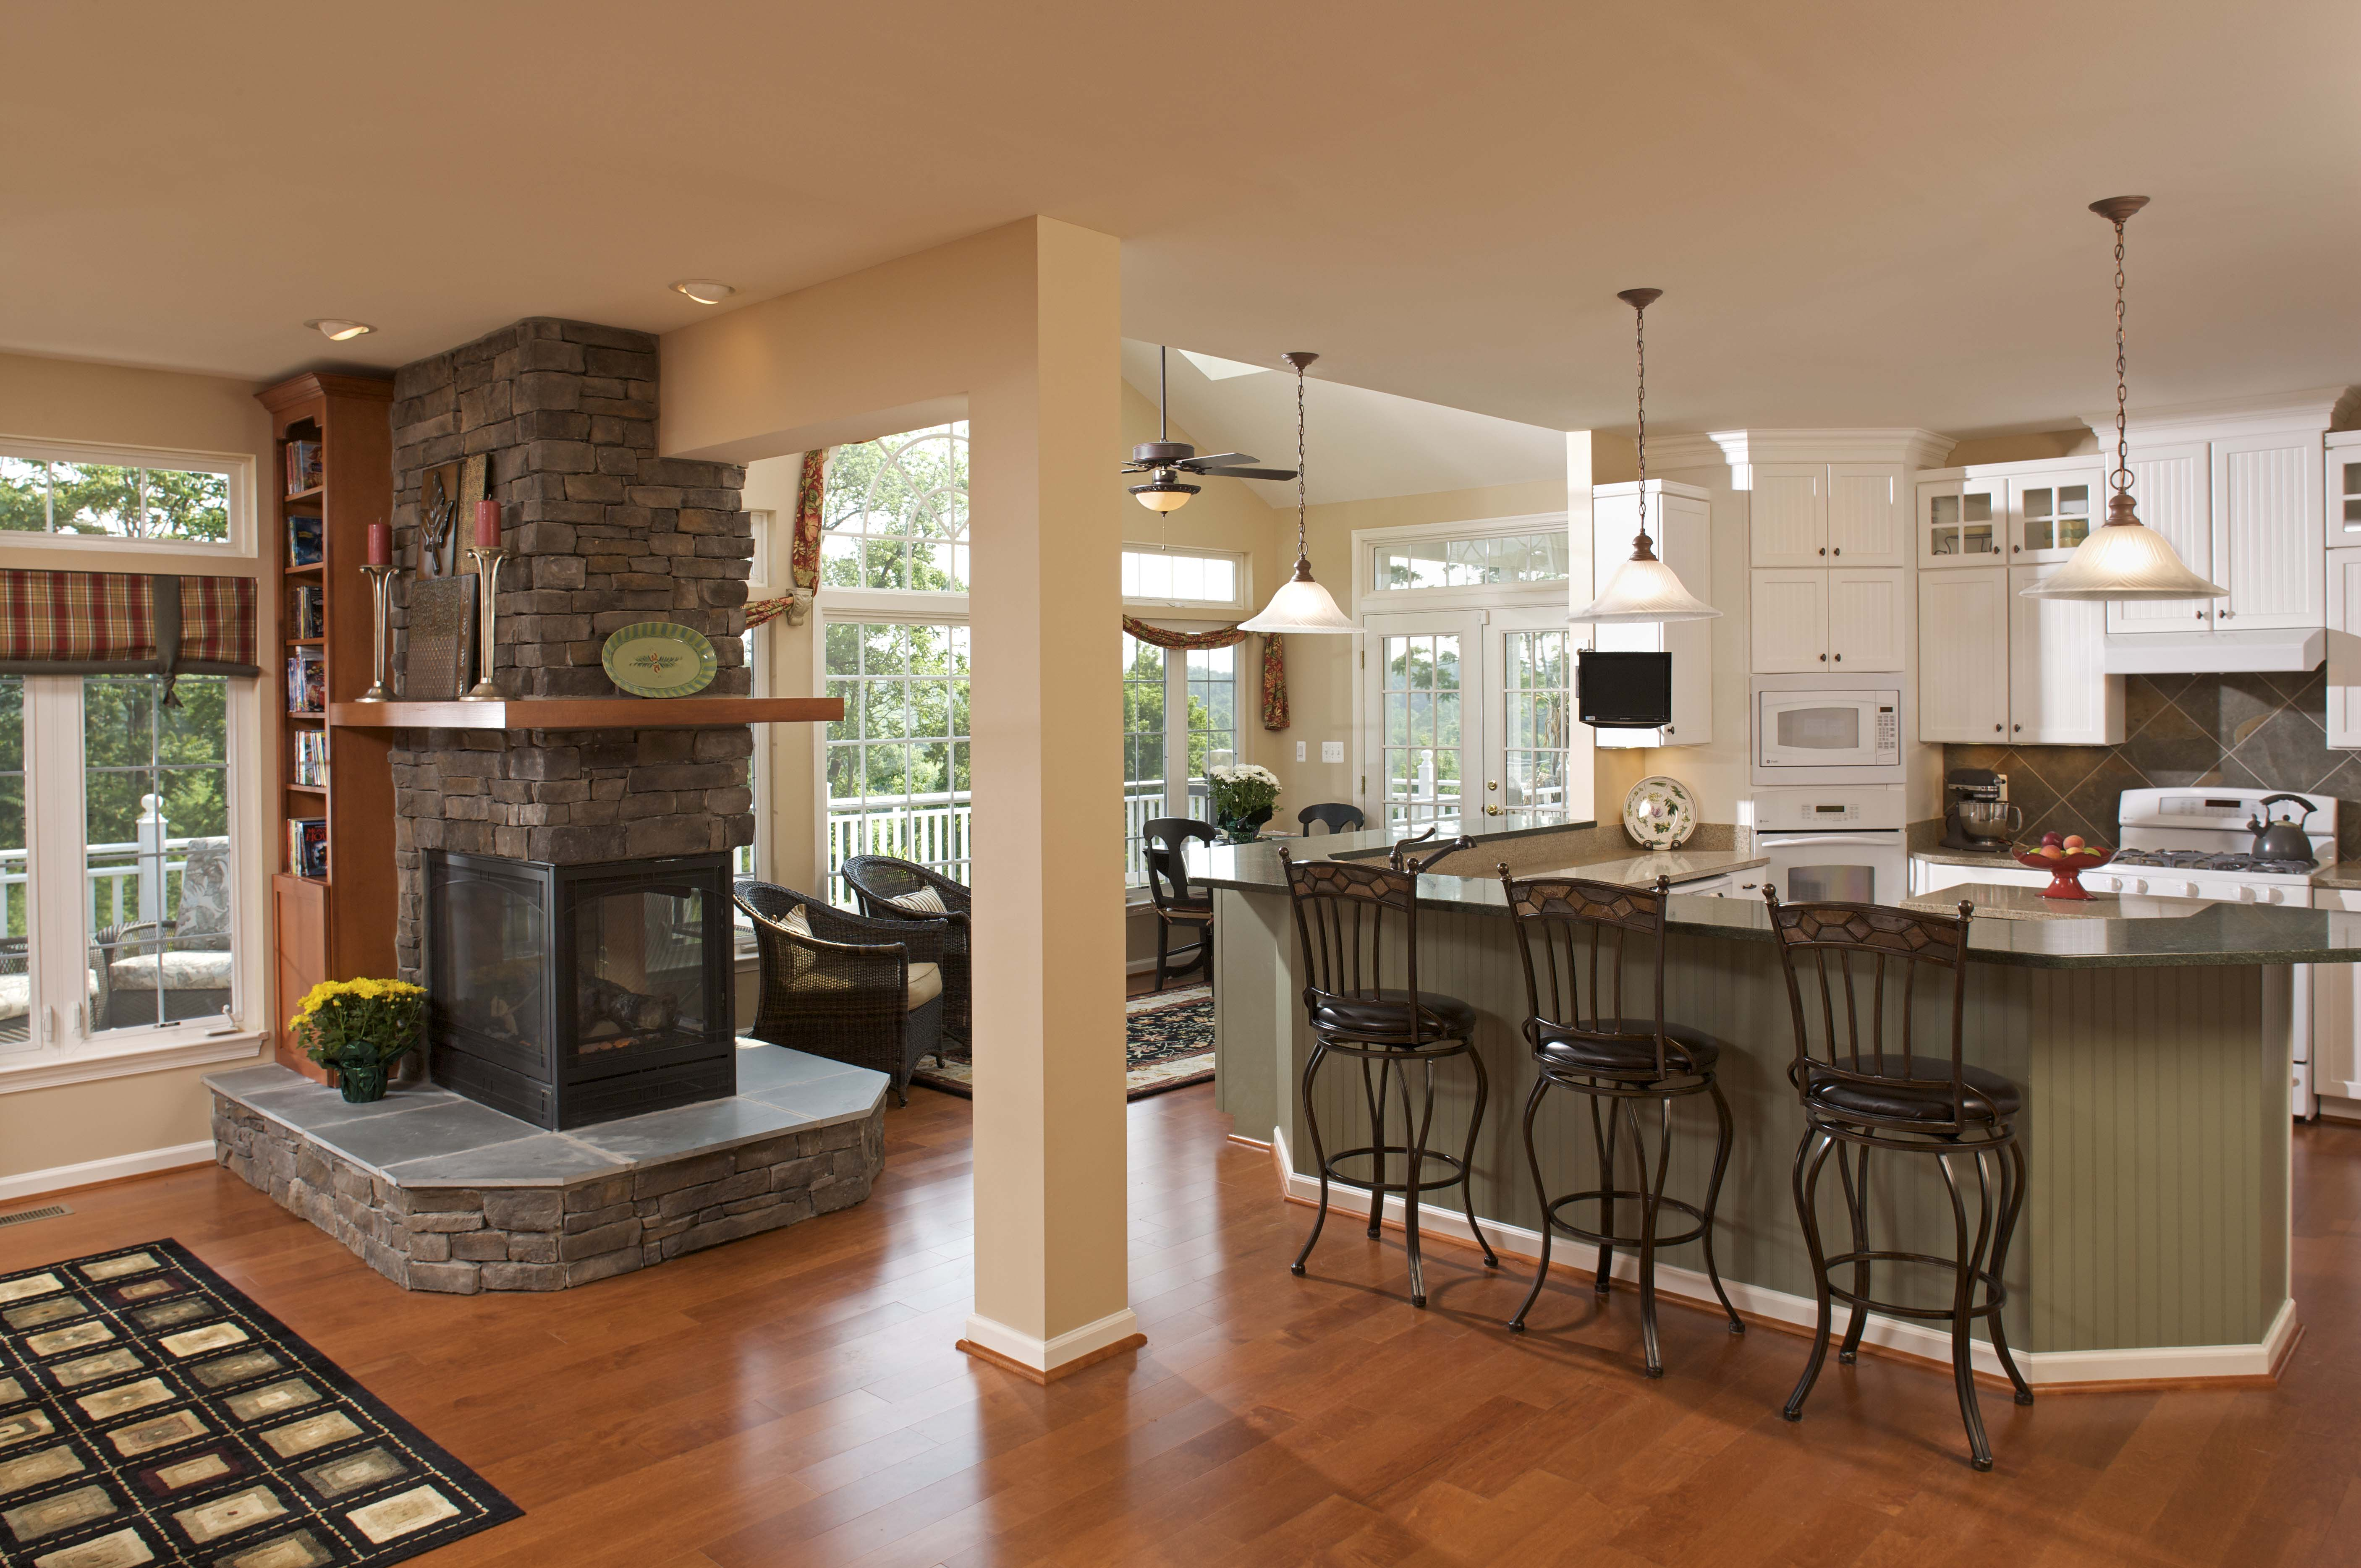 Contractor tips top 10 home remodeling don 39 ts investors for How to get your house renovated for free